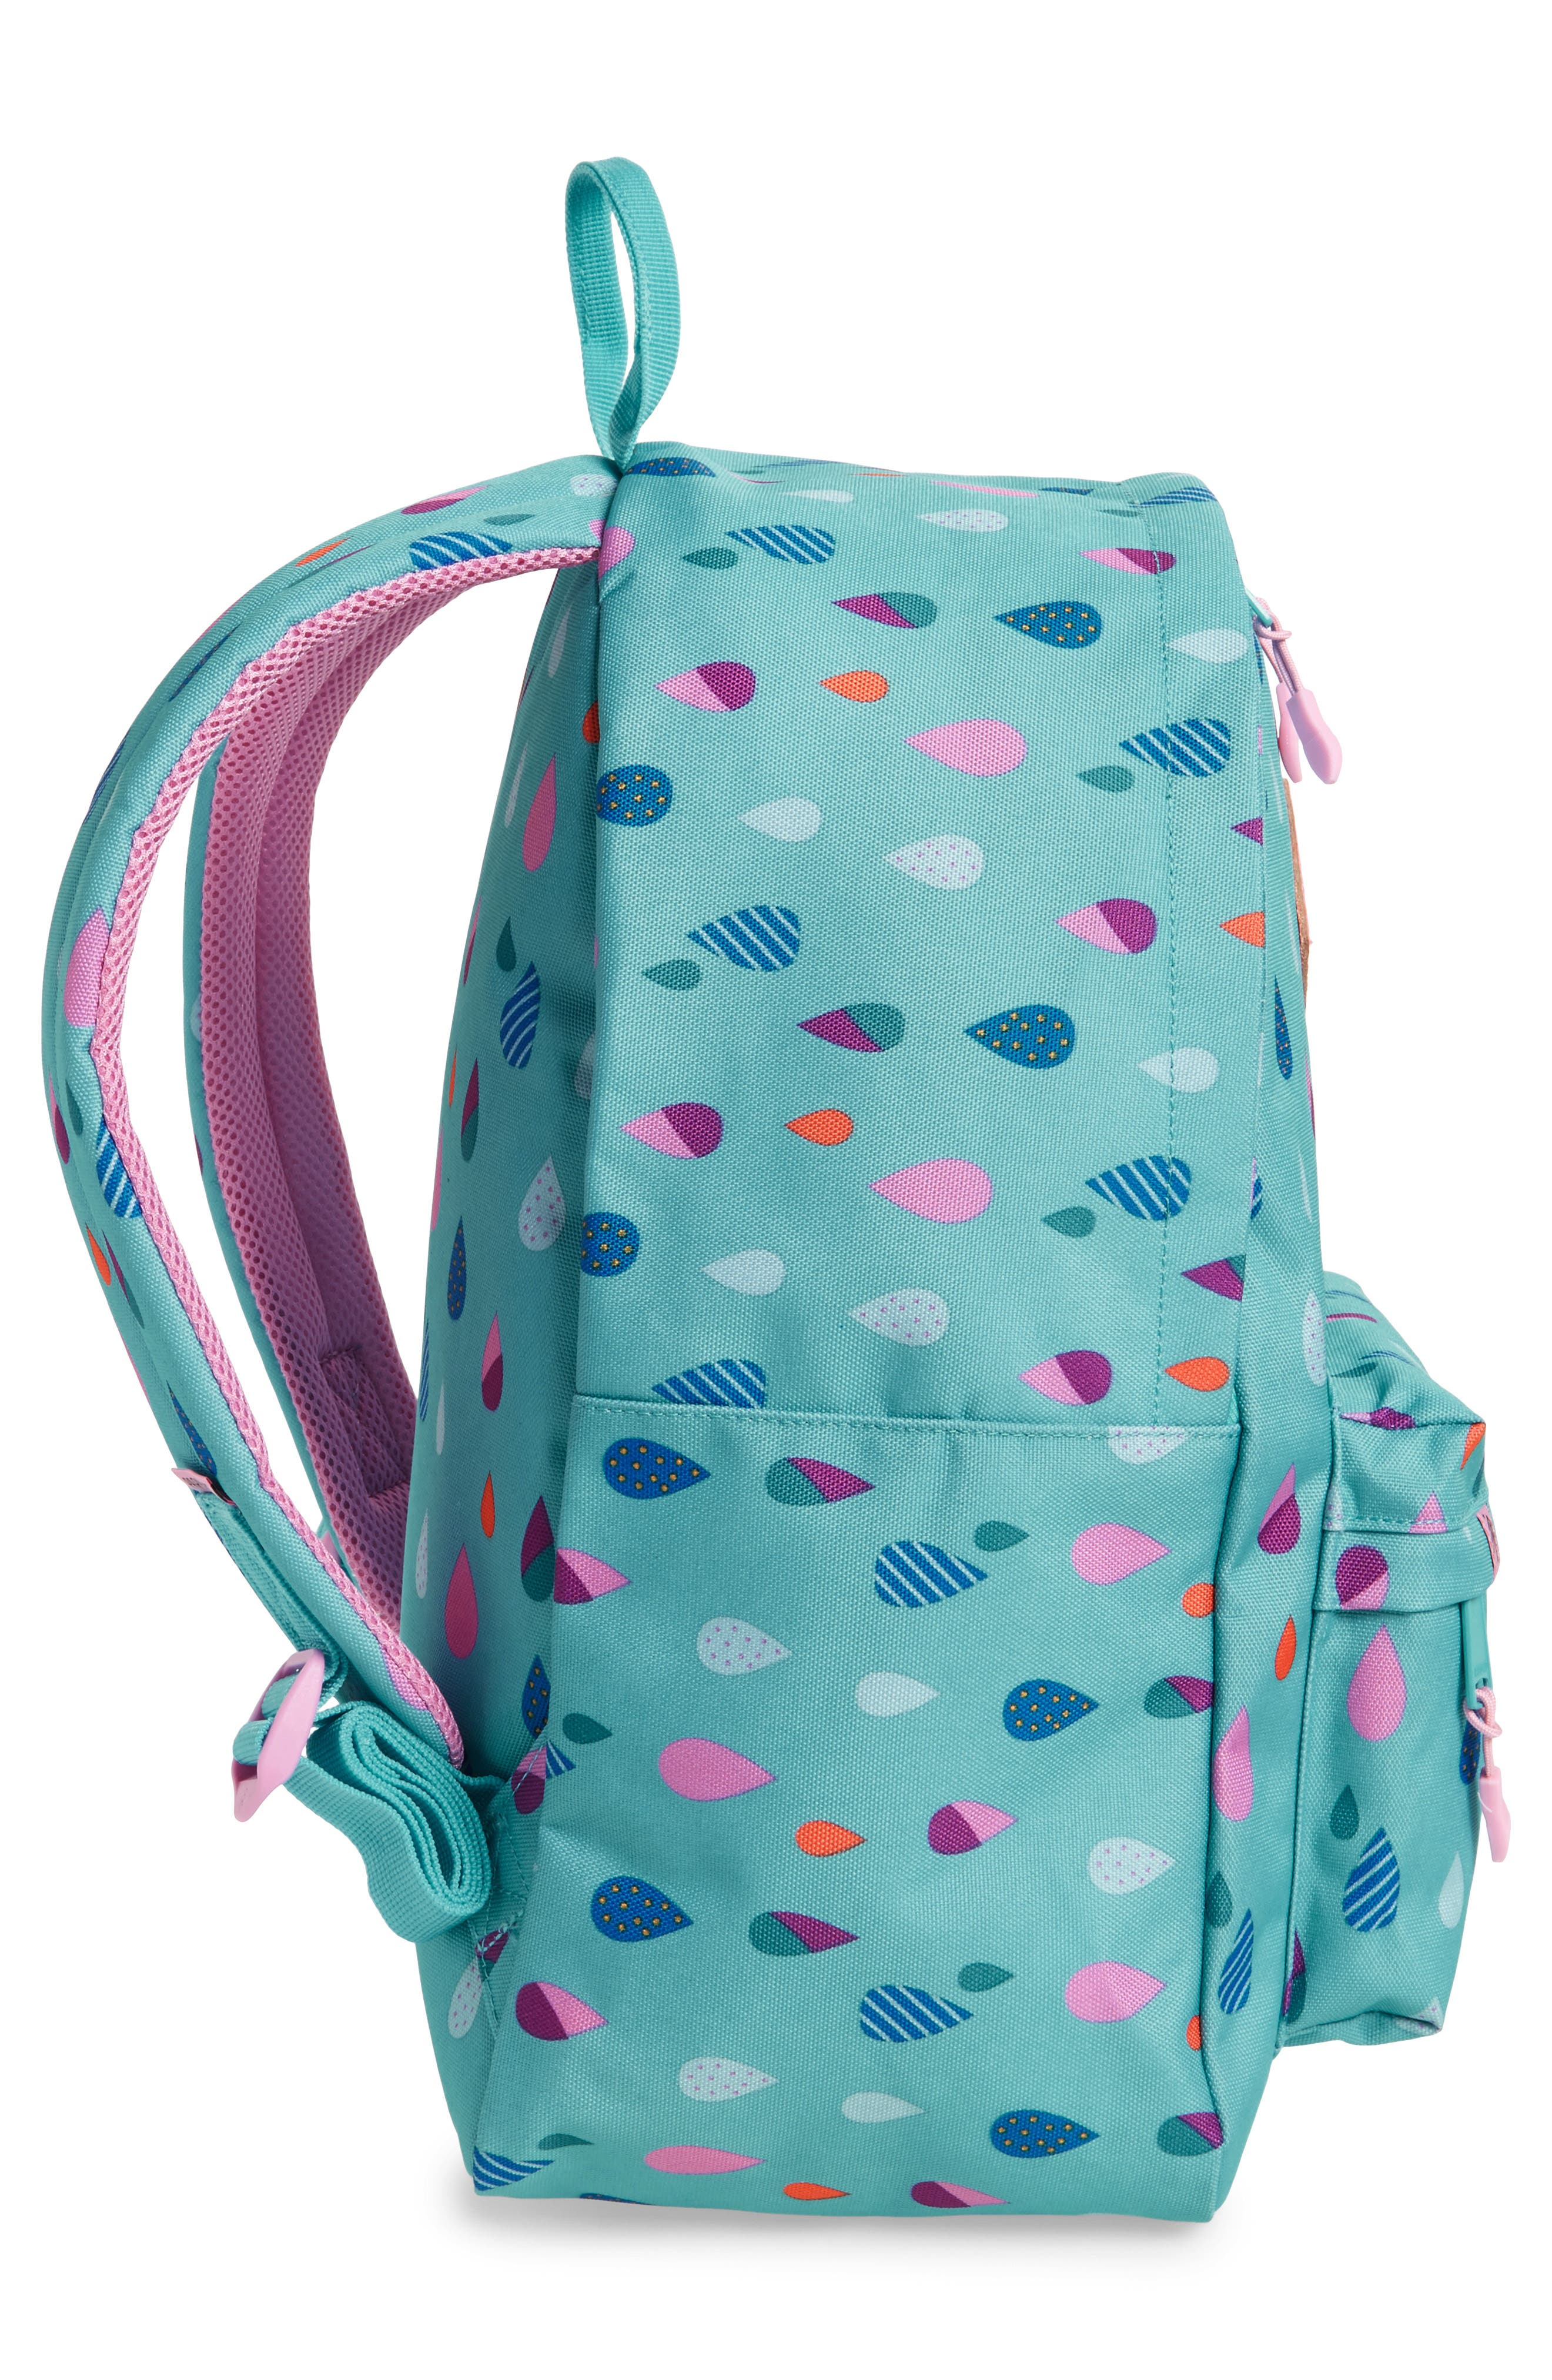 Bayside - Puddles Backpack,                             Alternate thumbnail 4, color,                             458